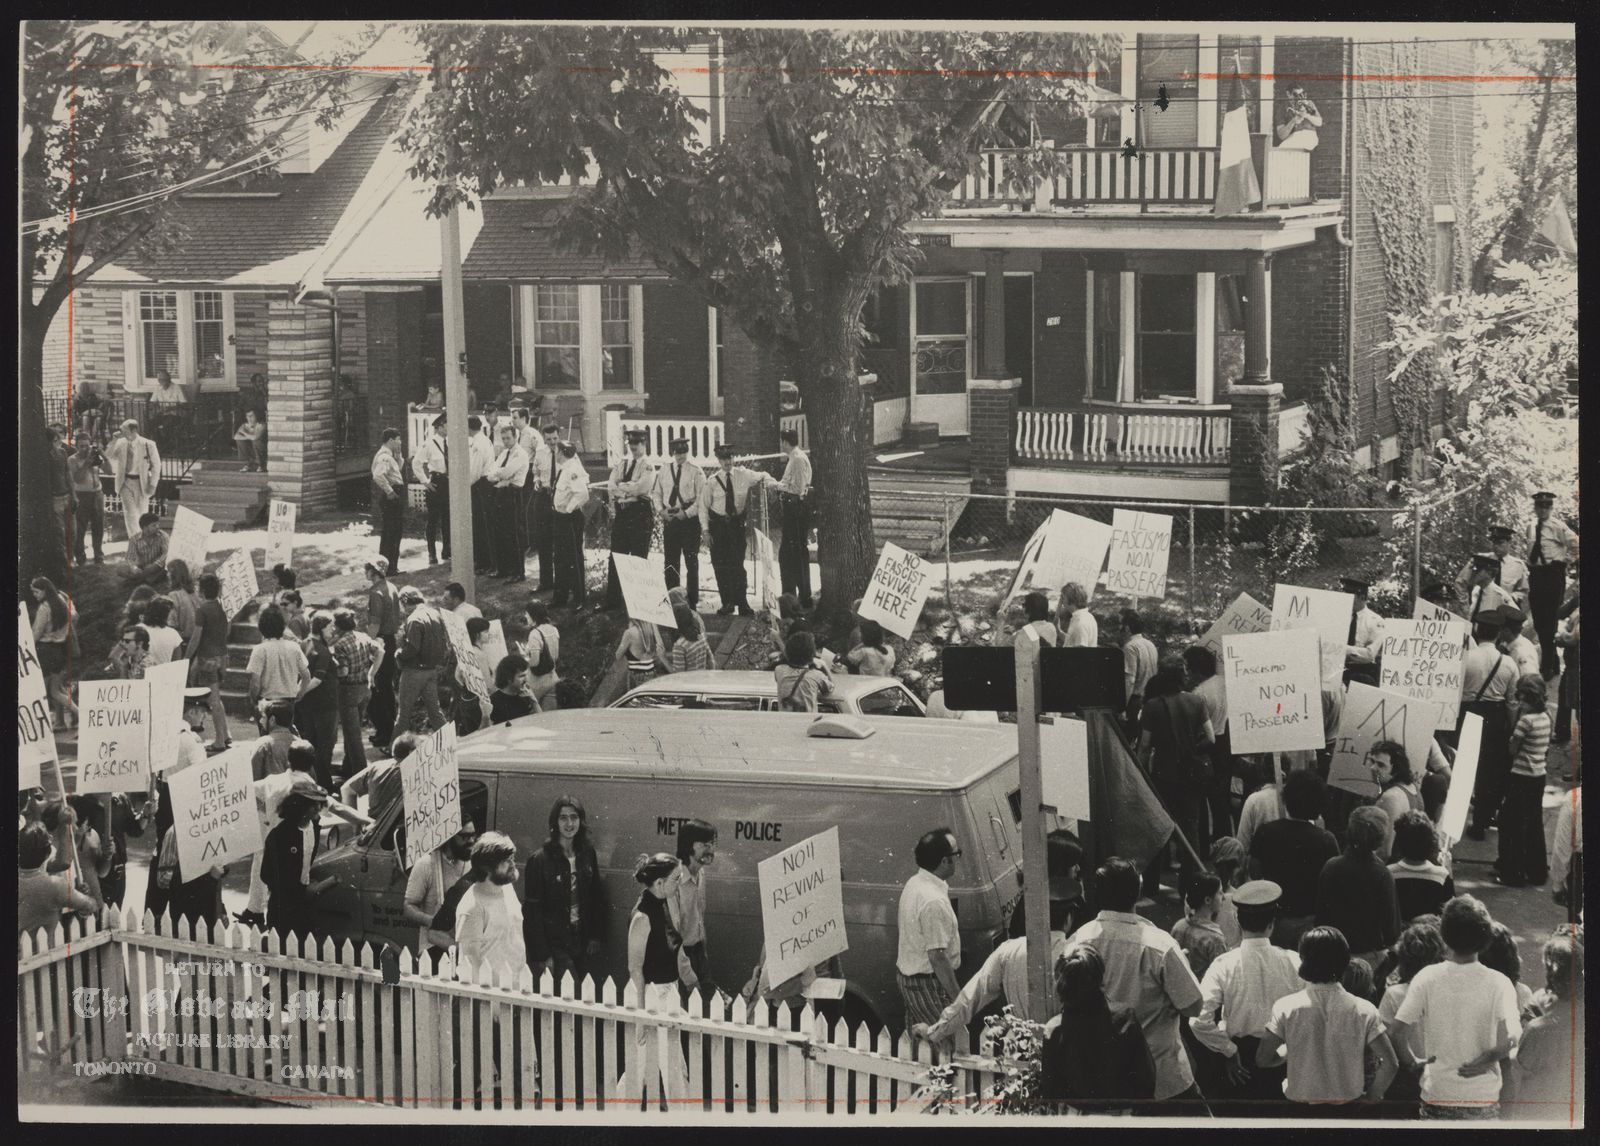 The notes transcribed from the back of this photograph are as follows: Police stand in front of Ashdale Avenue house occupied by Western Guard Party while about 100 members of United Front march in the street.